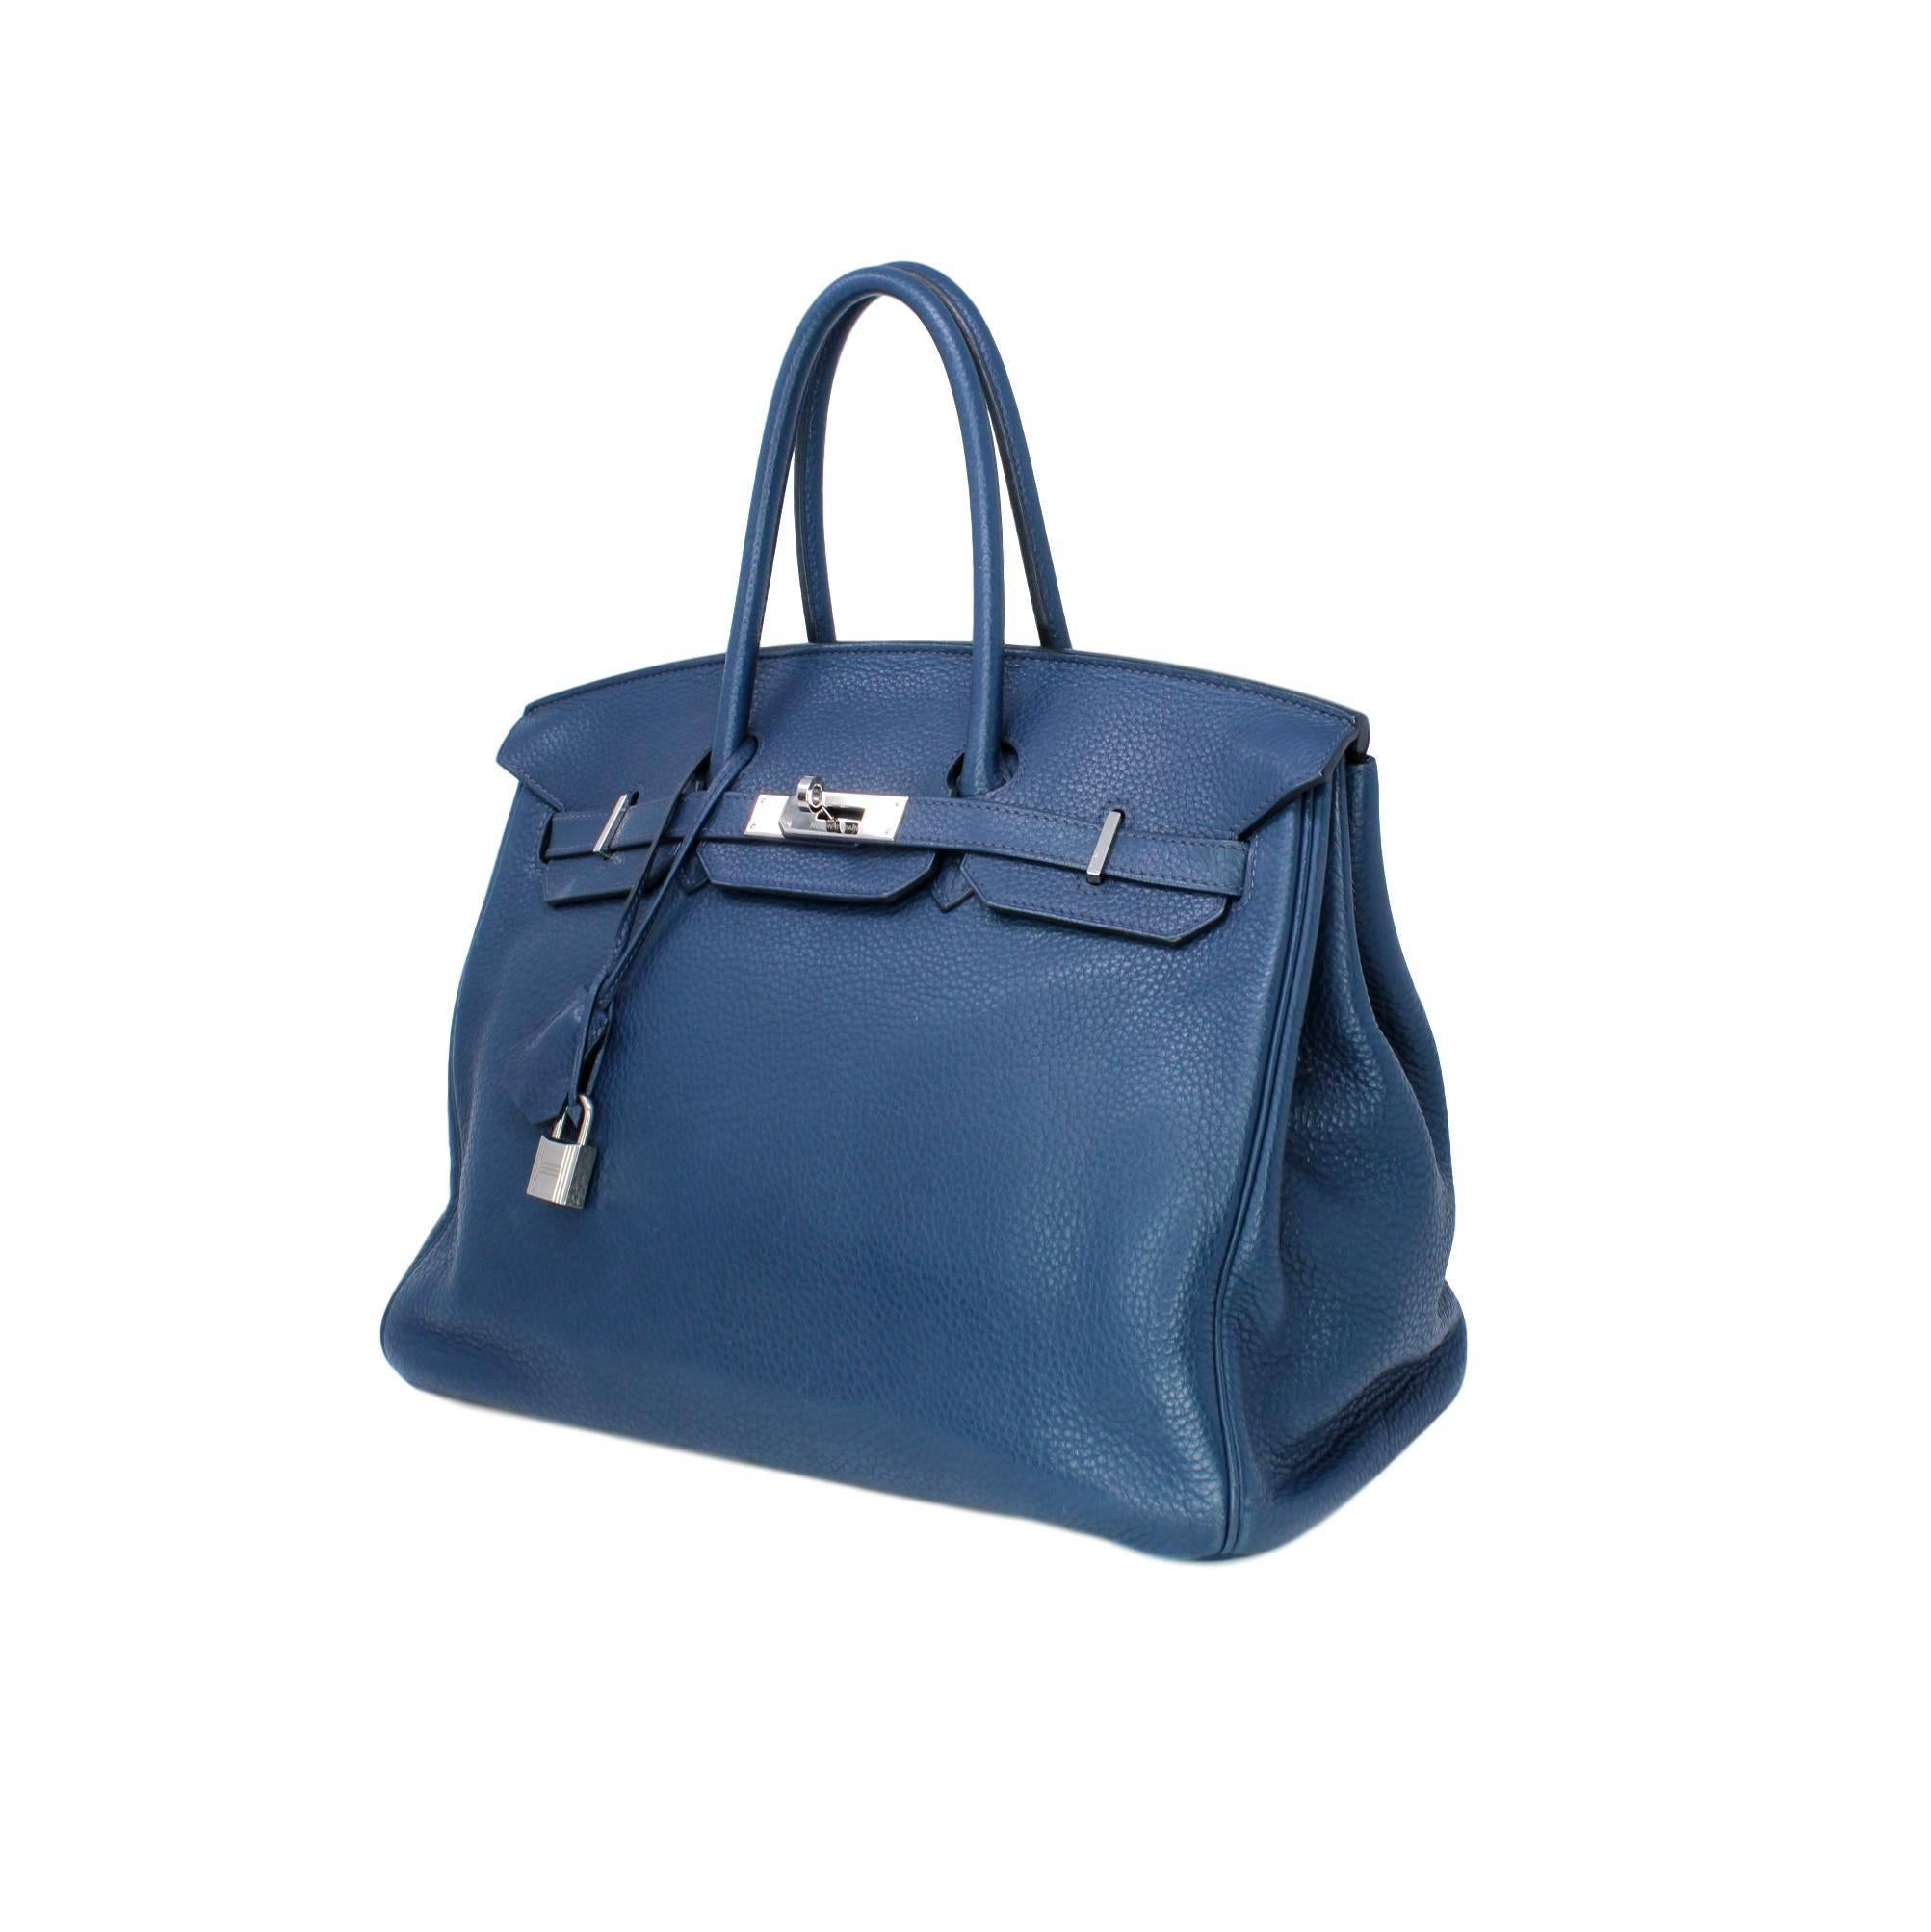 a9eb2022d1c ... best a great neutral this hermes birkin bag in navy blue togo leather  may be used